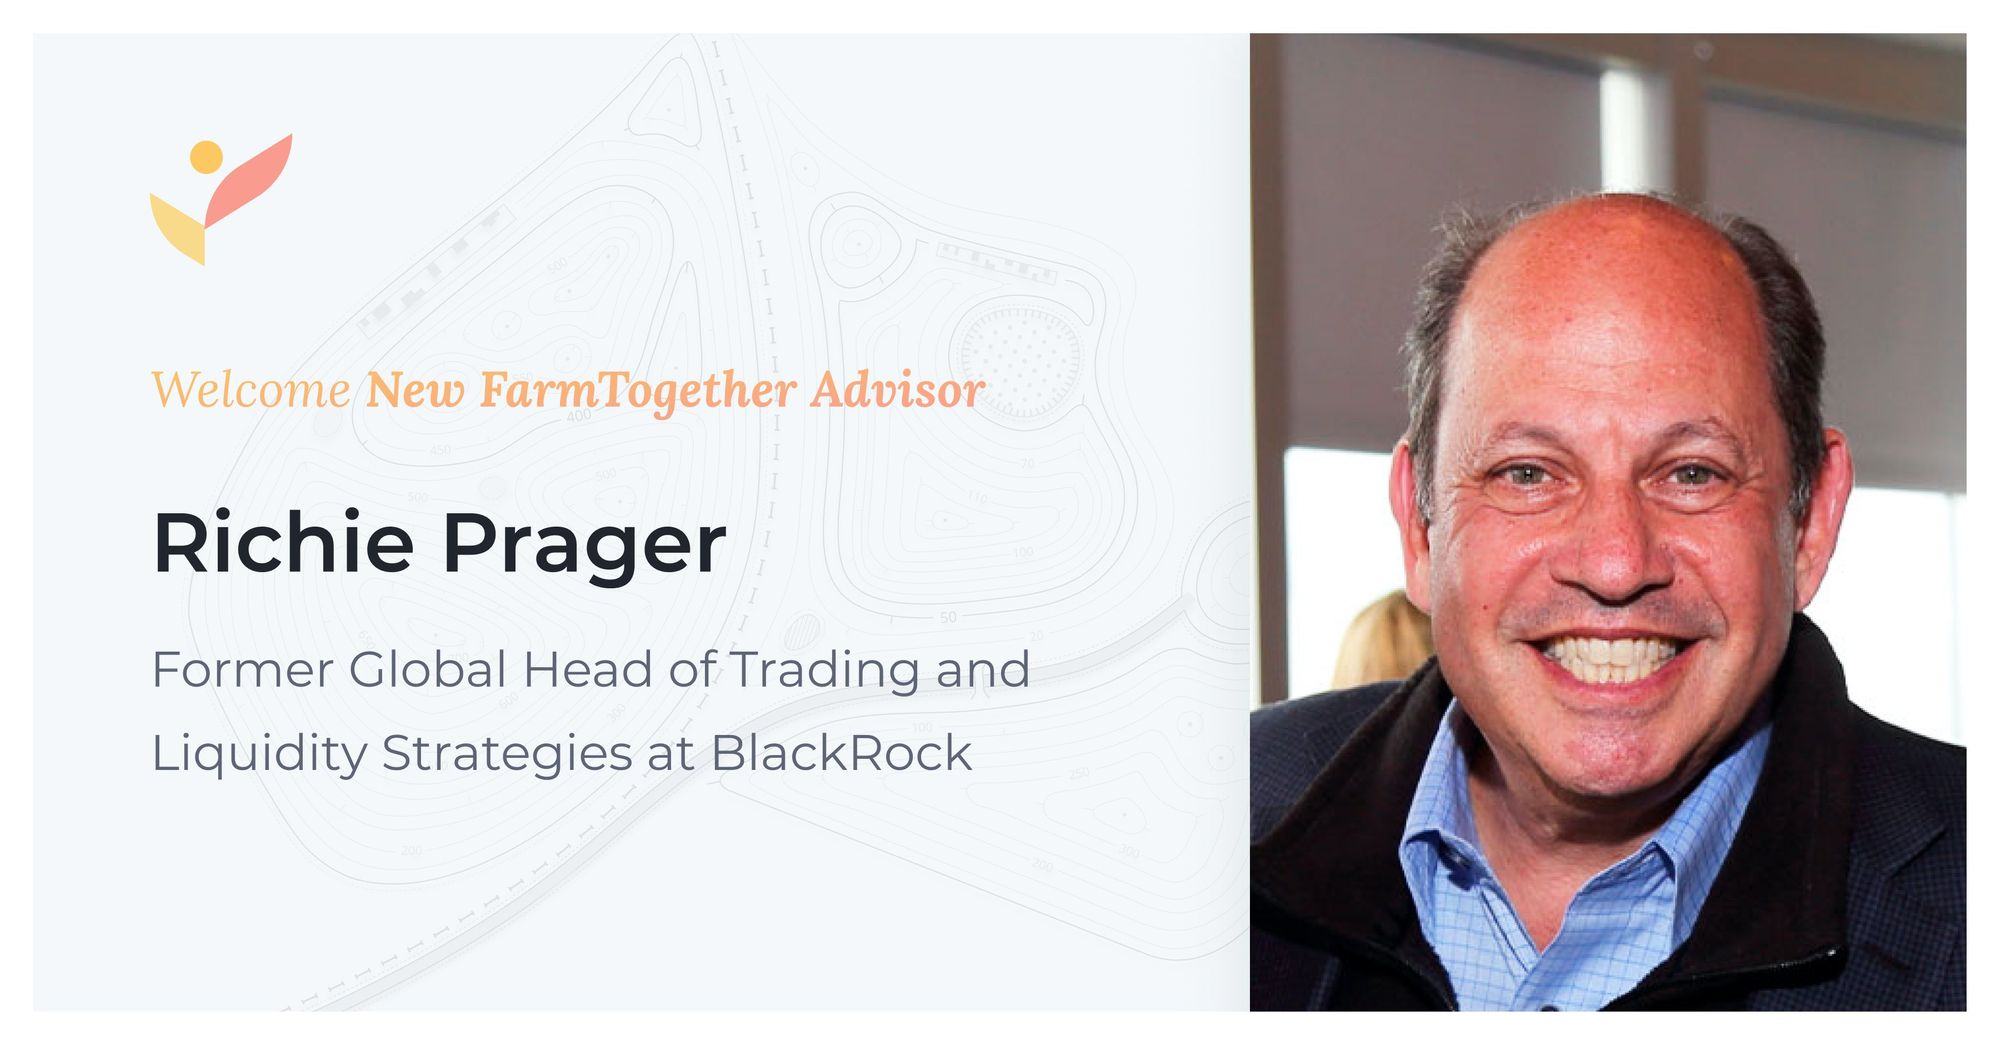 Richie Prager, Former Global Head of Trading and Liquidity Strategies at BlackRock